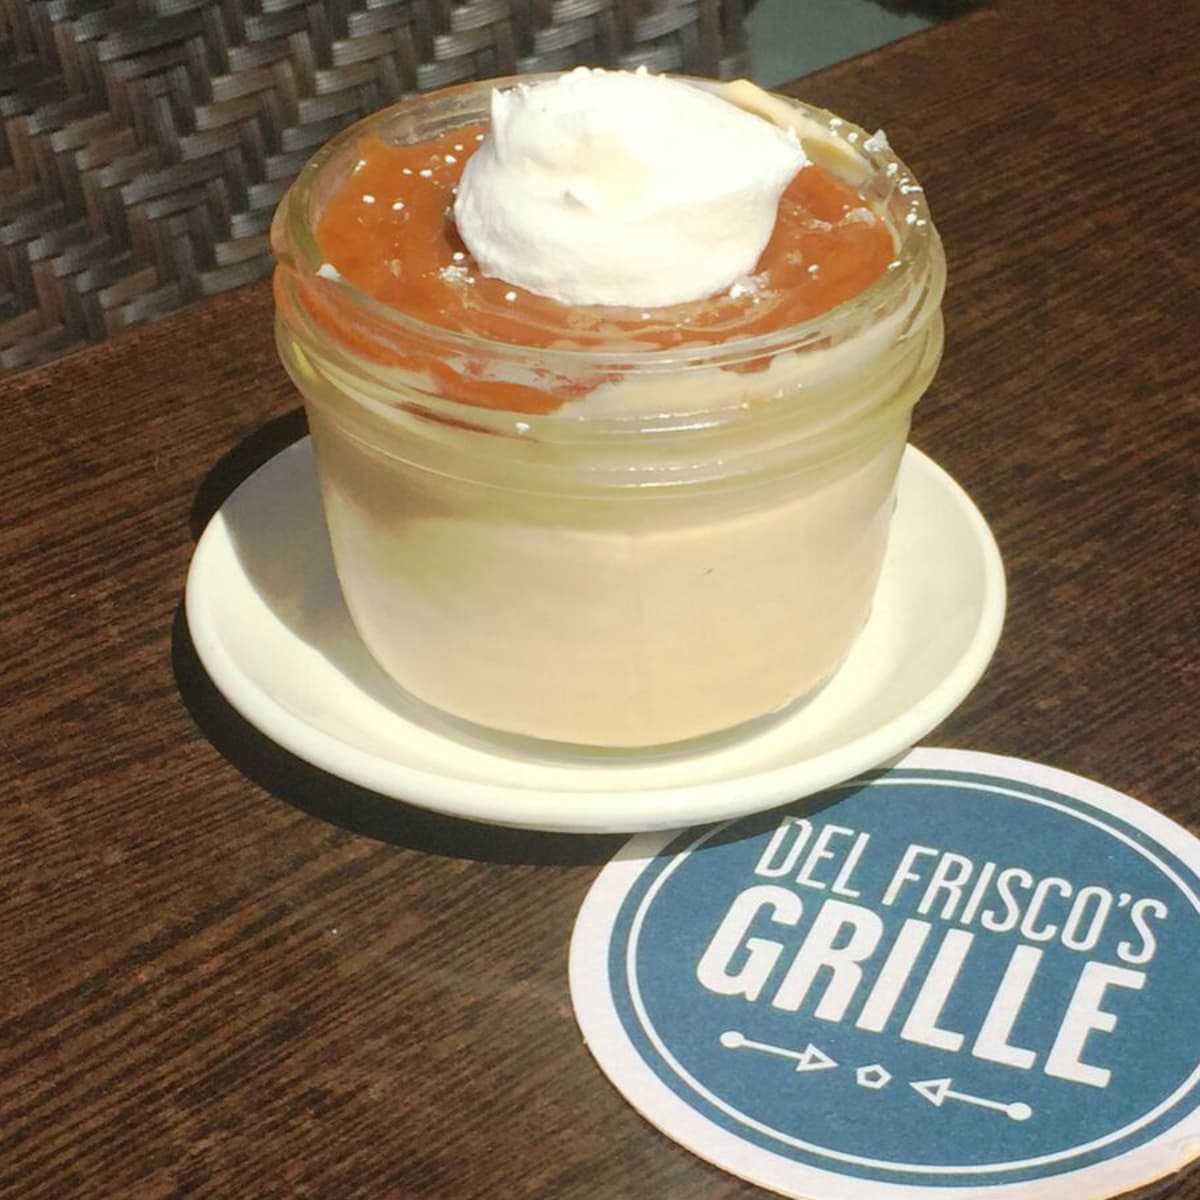 Del Frisco's Grille butterscotch pudding